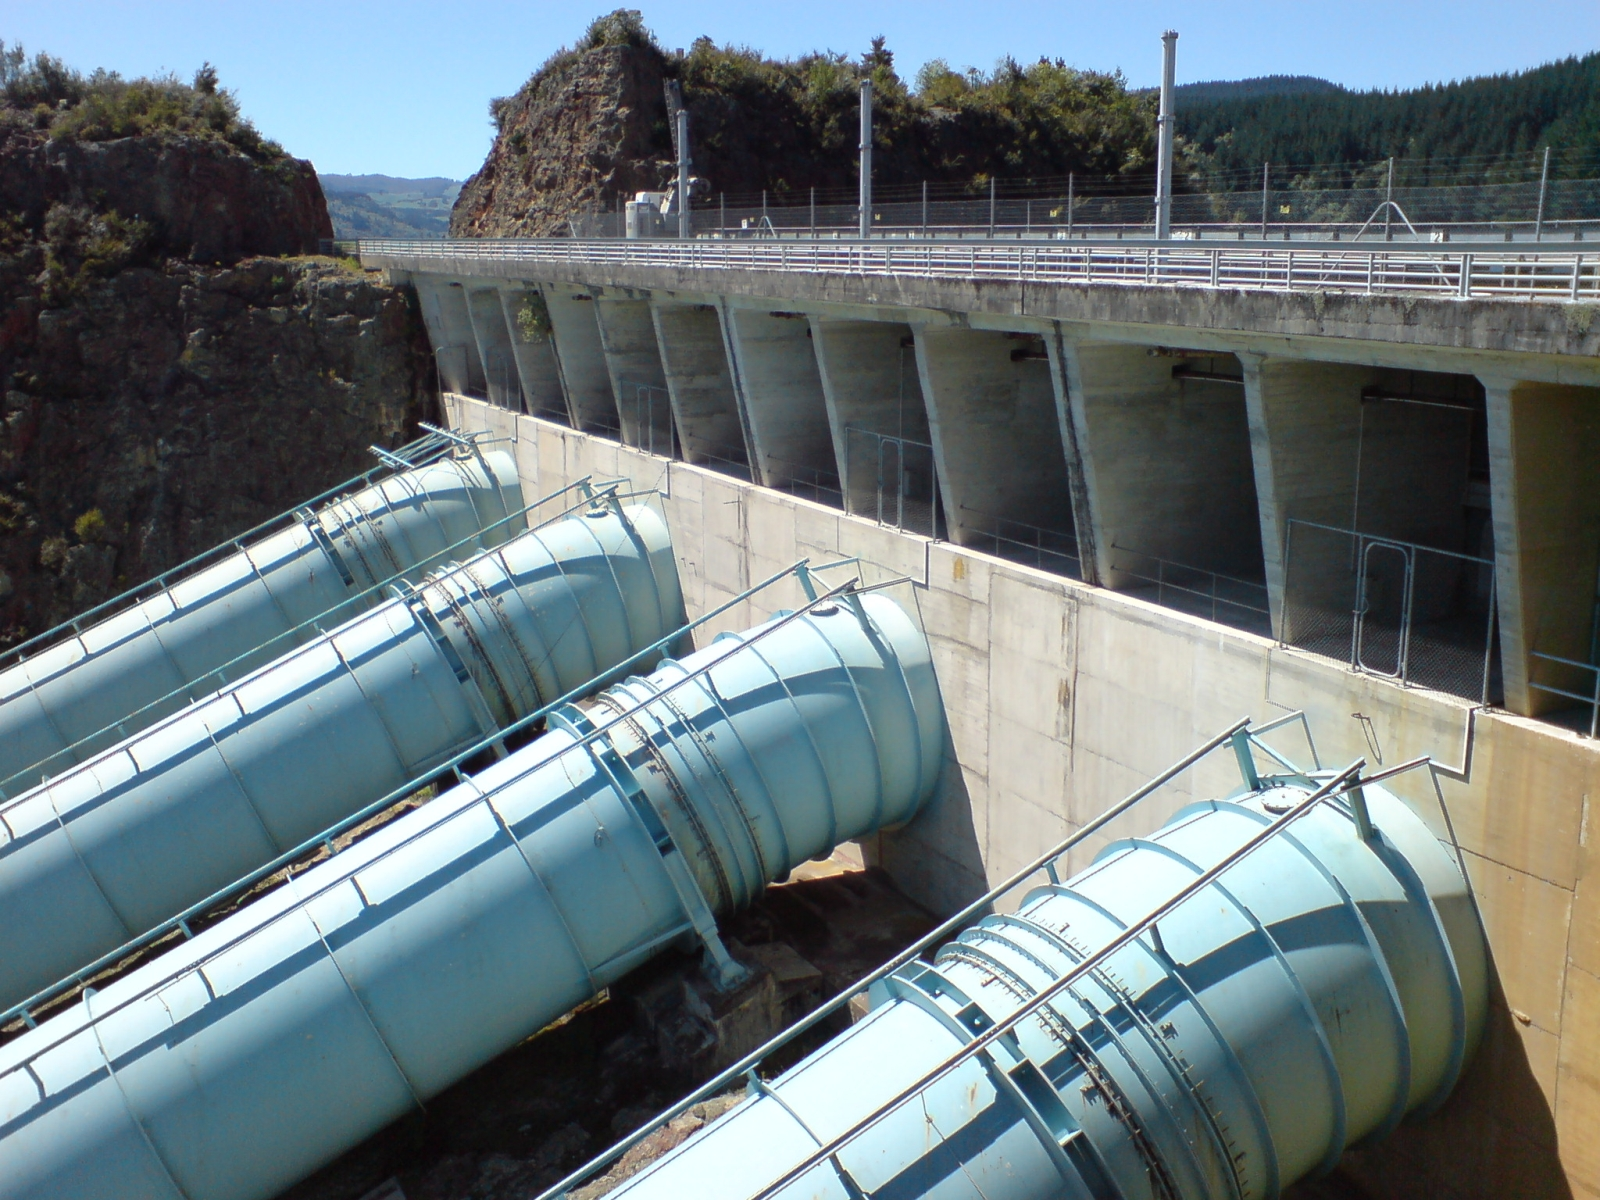 Types And Working Functionality Of Hydroelectric Energy Power Plants